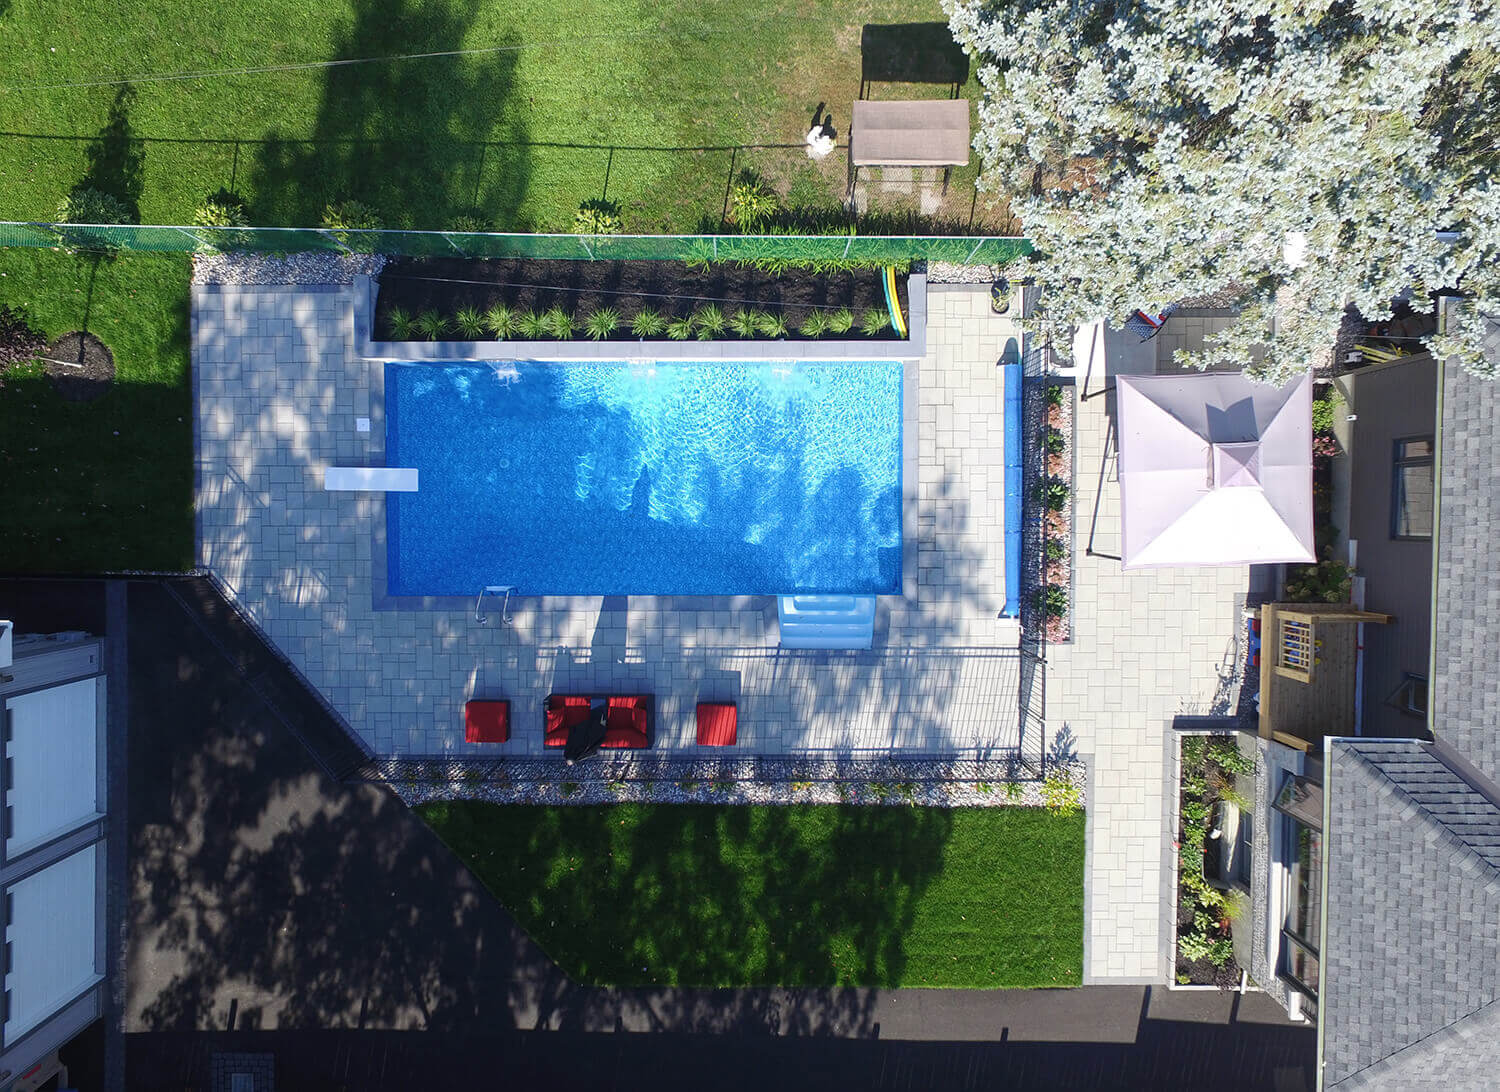 aerial view of backyard oasis with new inground pool and landscaping